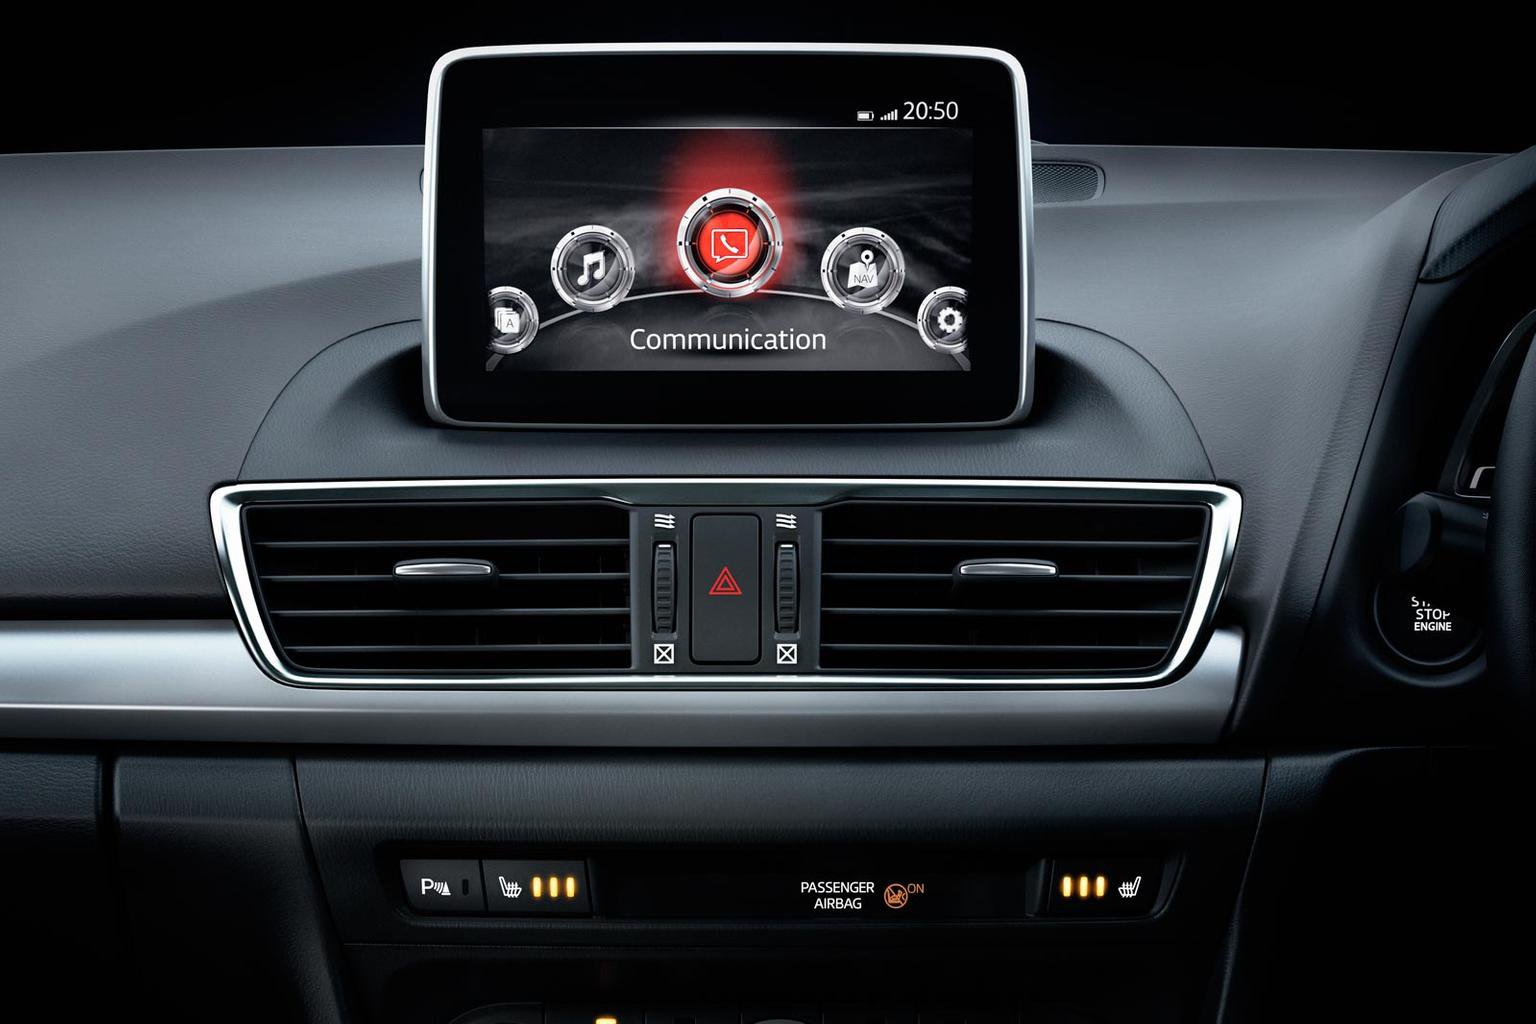 3 ways the all-new Mazda3 is the ideal mobile entertainment hub